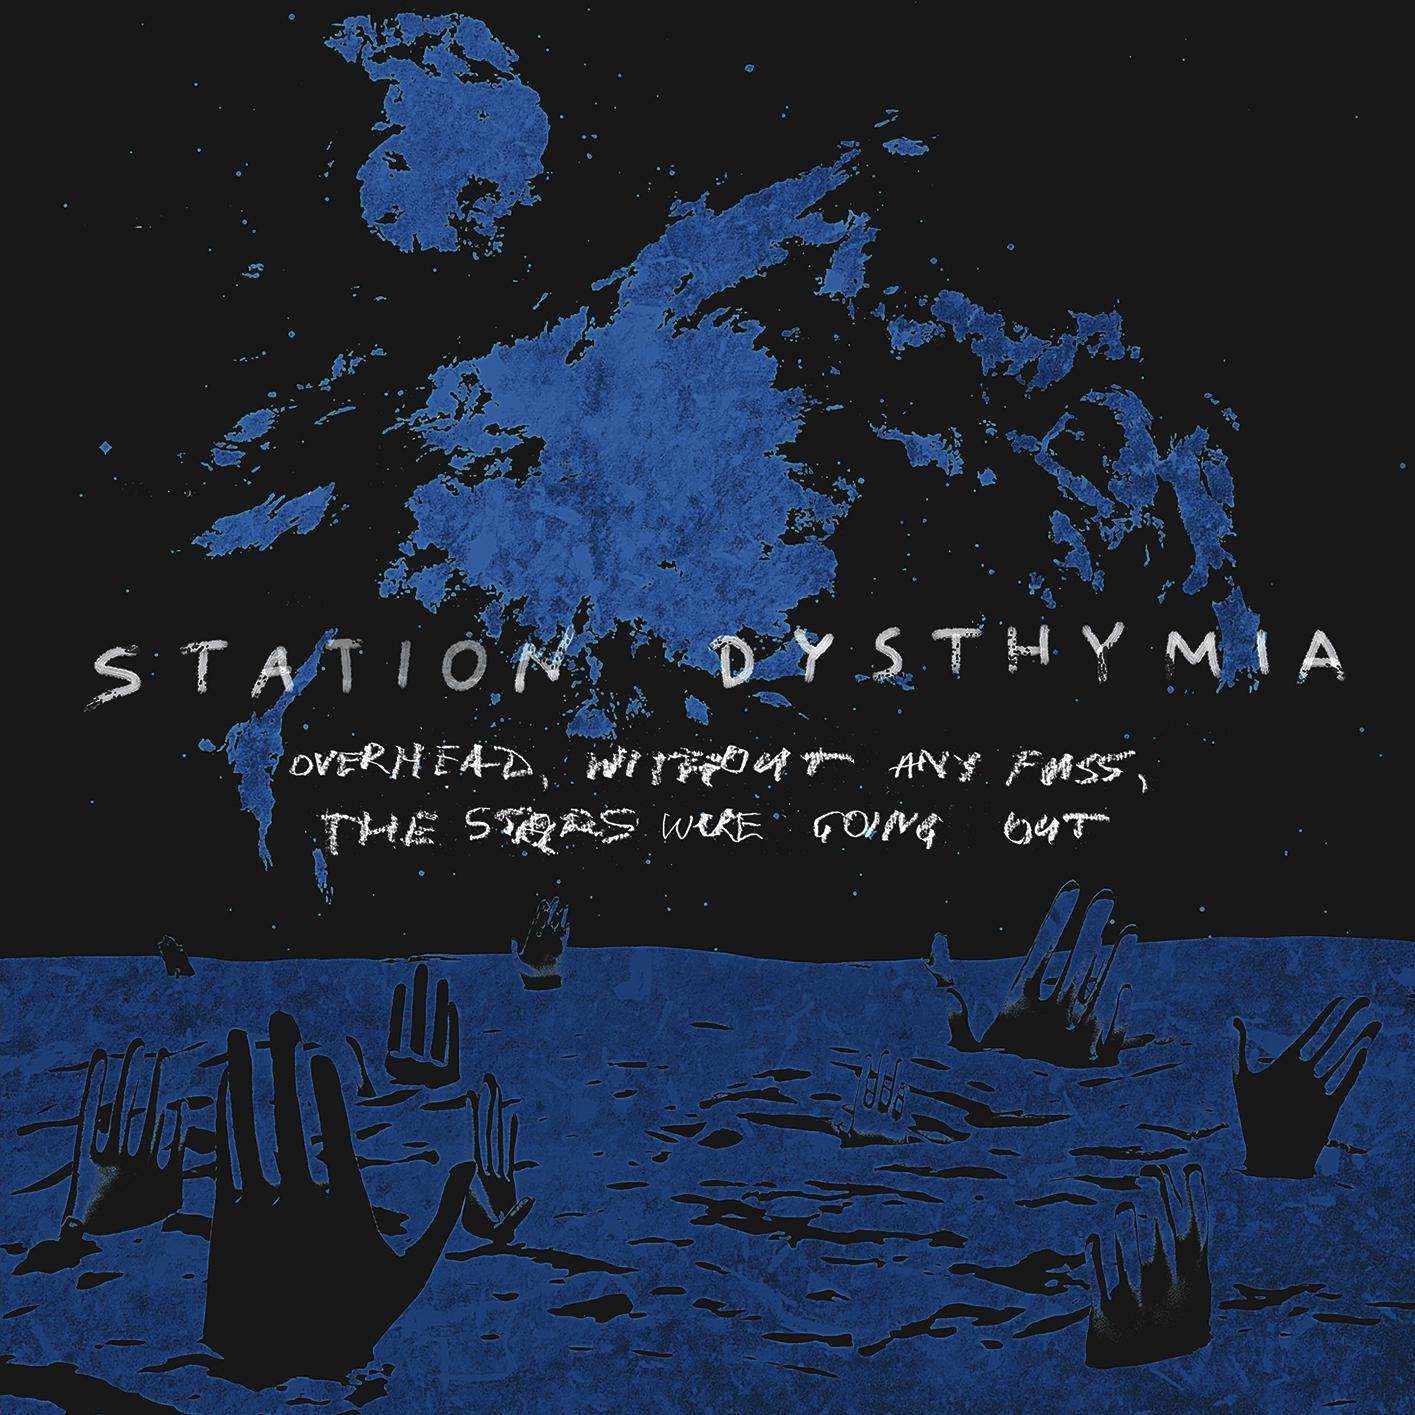 station dysthymia overhead without any fuss the stars were going out